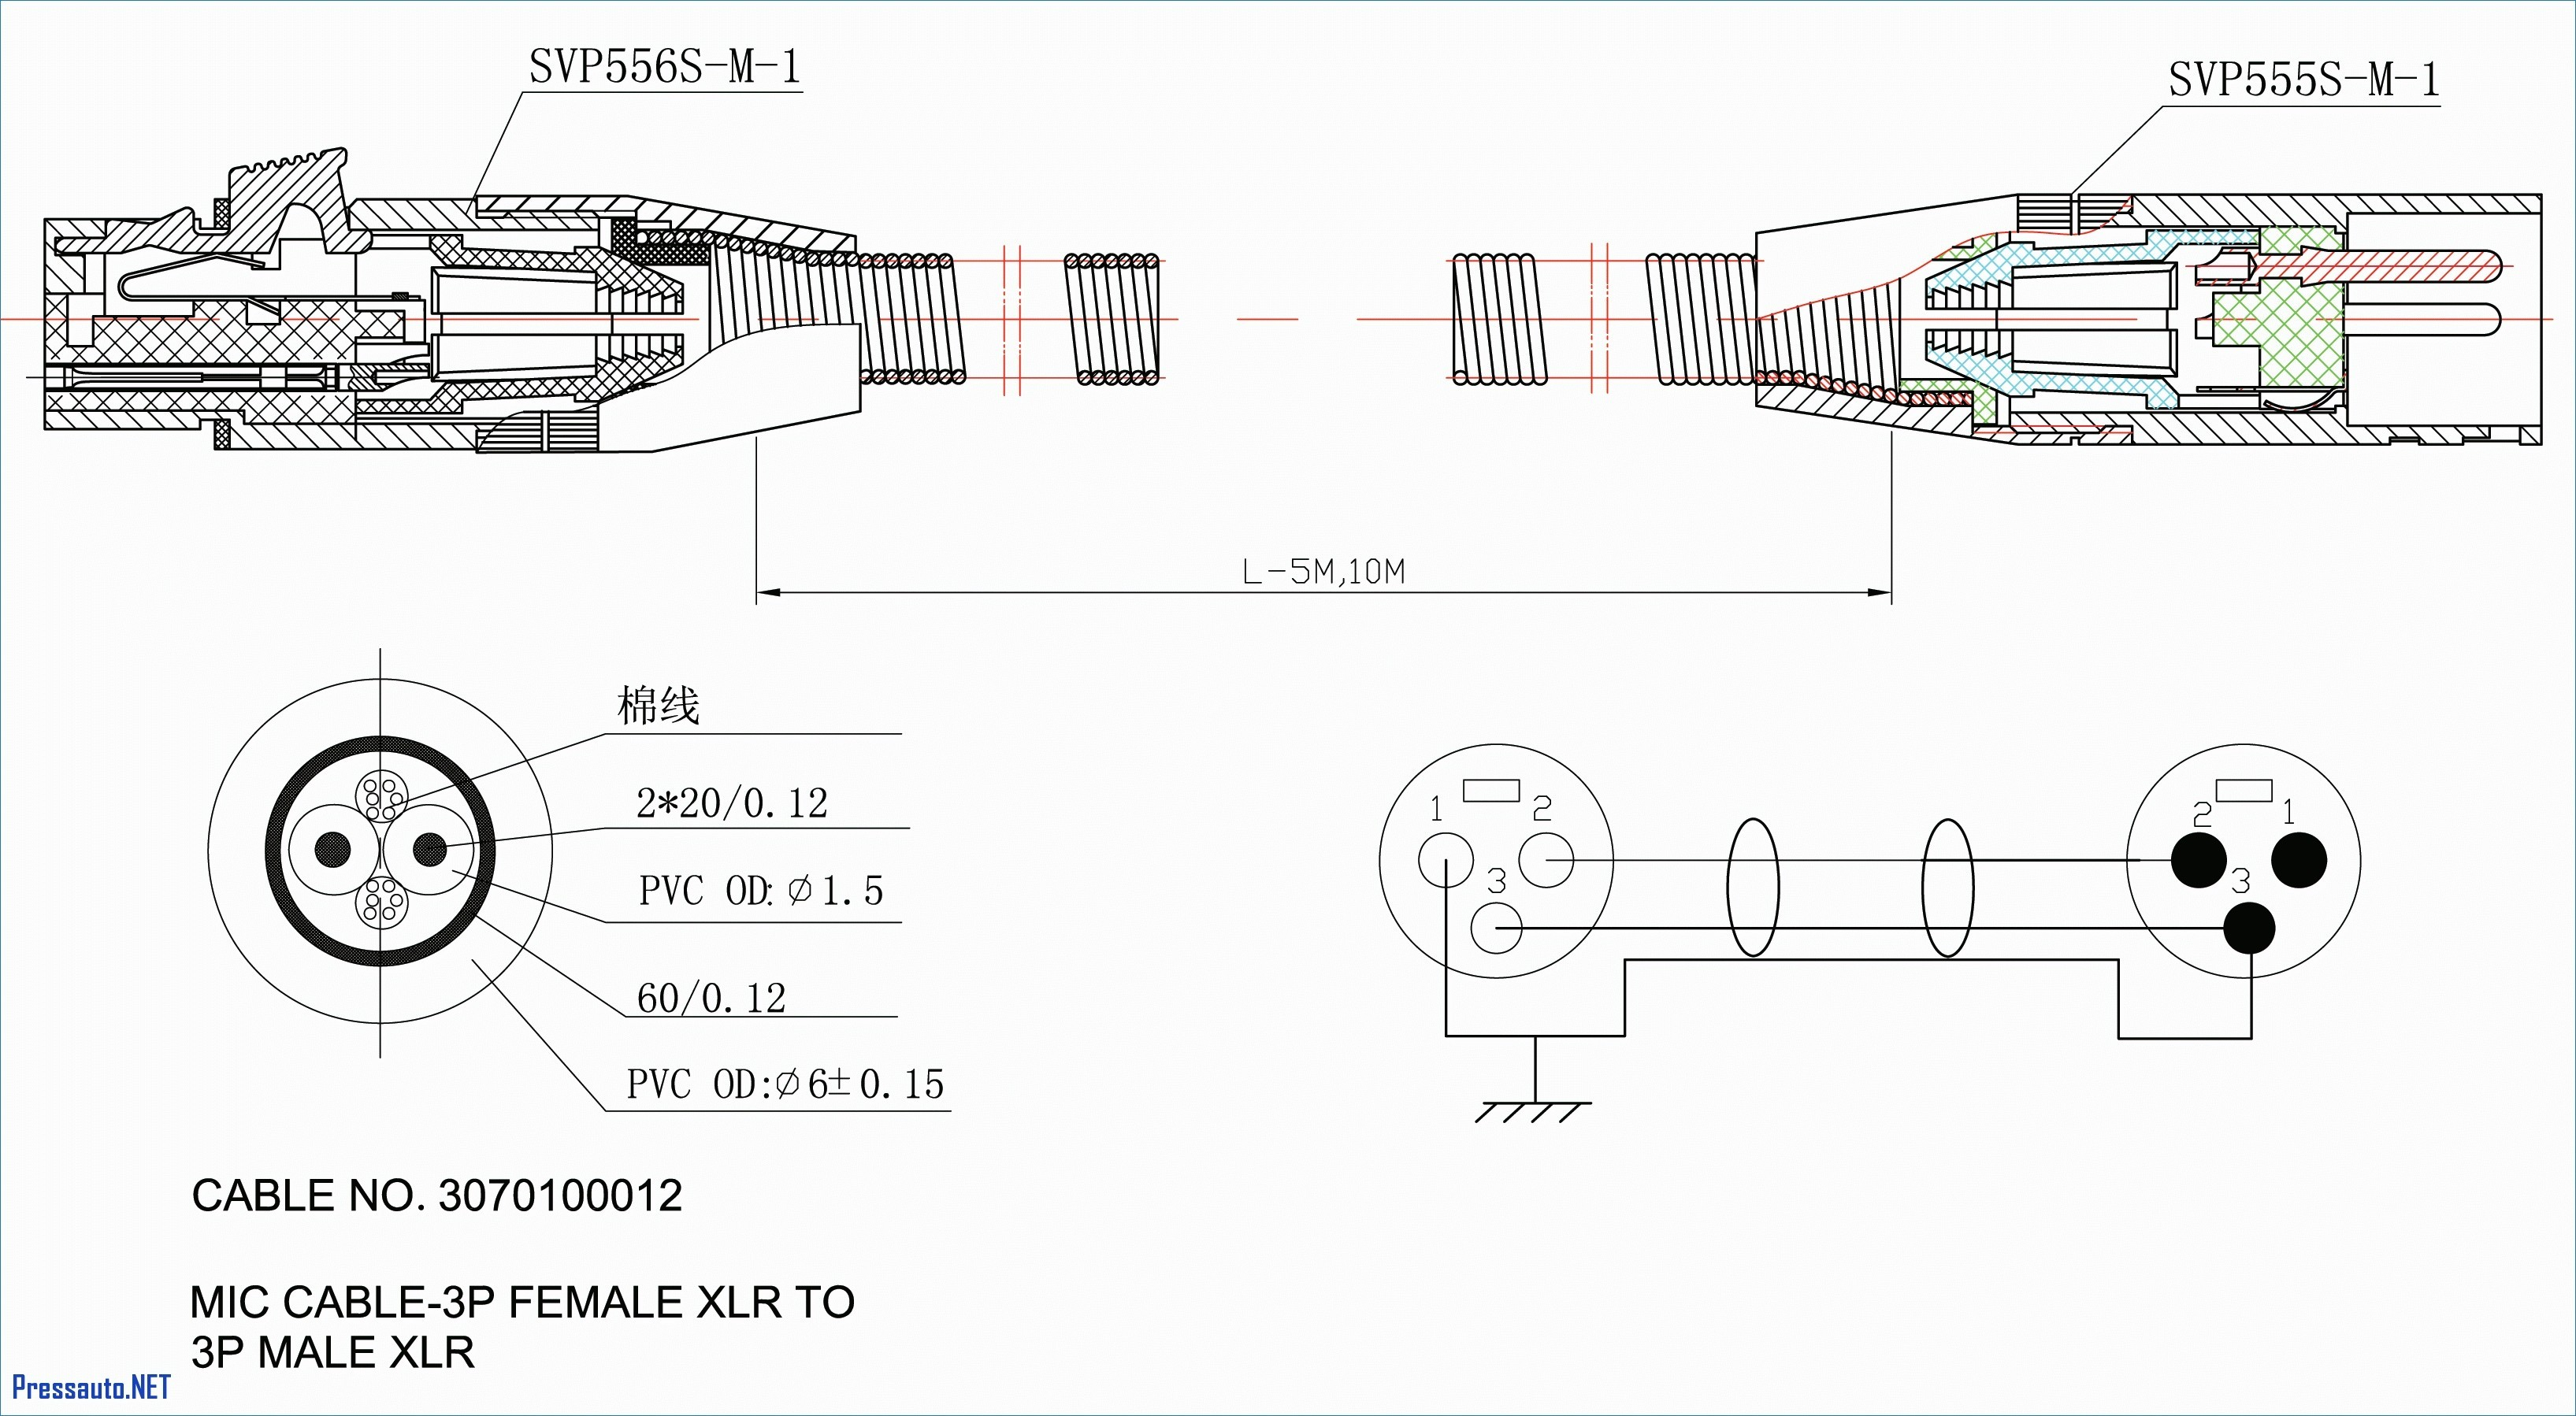 Vw Jetta 1 8 T Engine Diagram Vw Tdi Engine Diagram Another Blog About Wiring Diagram • Of Vw Jetta 1 8 T Engine Diagram